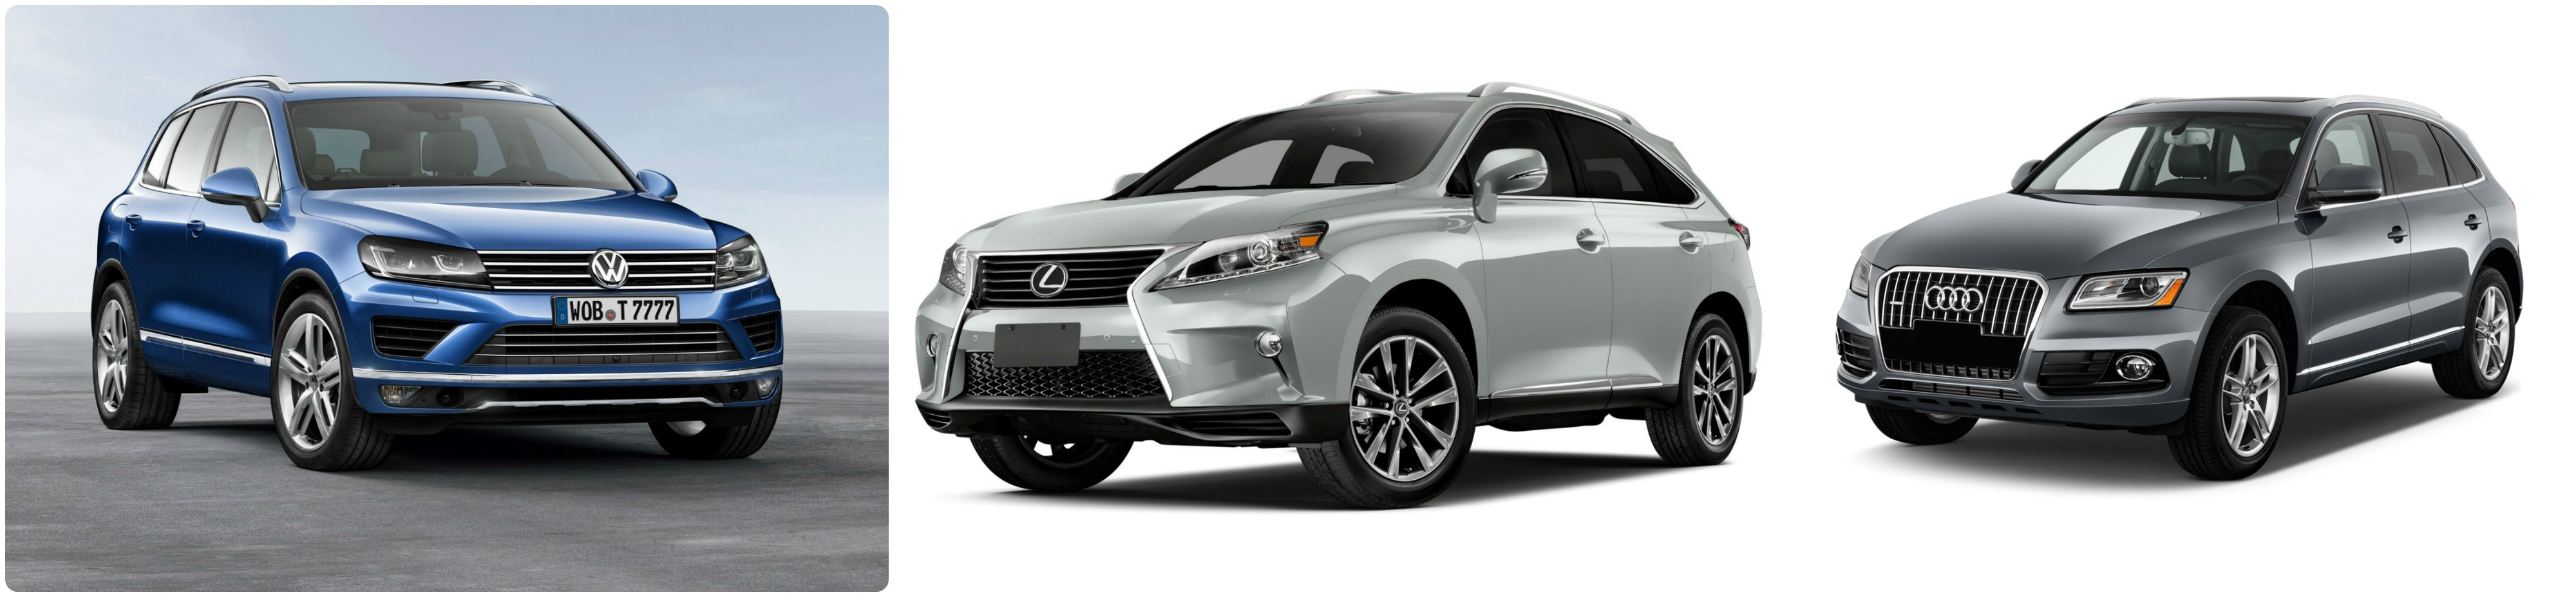 Best Of Lexus Dealers In Ma Honda Civic And Accord